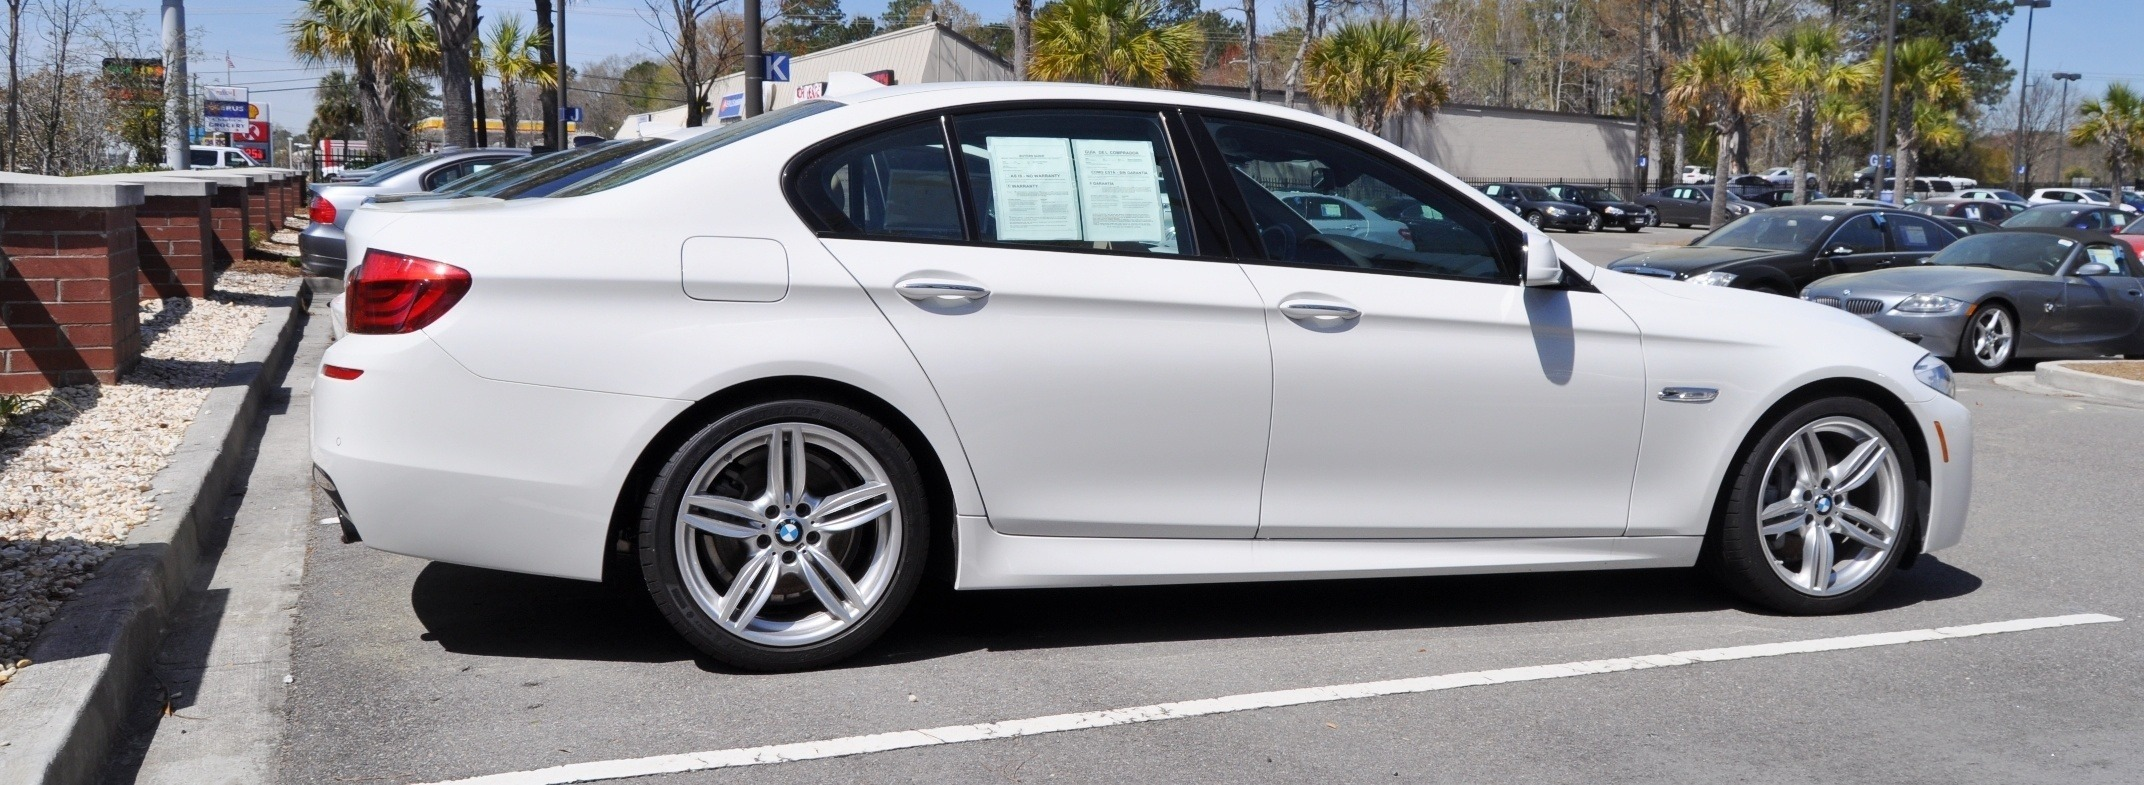 HD Video Road Test -- 2013 BMW 535i M Sport RWD -- Refined but Still Balanced, FAST and Posh 2